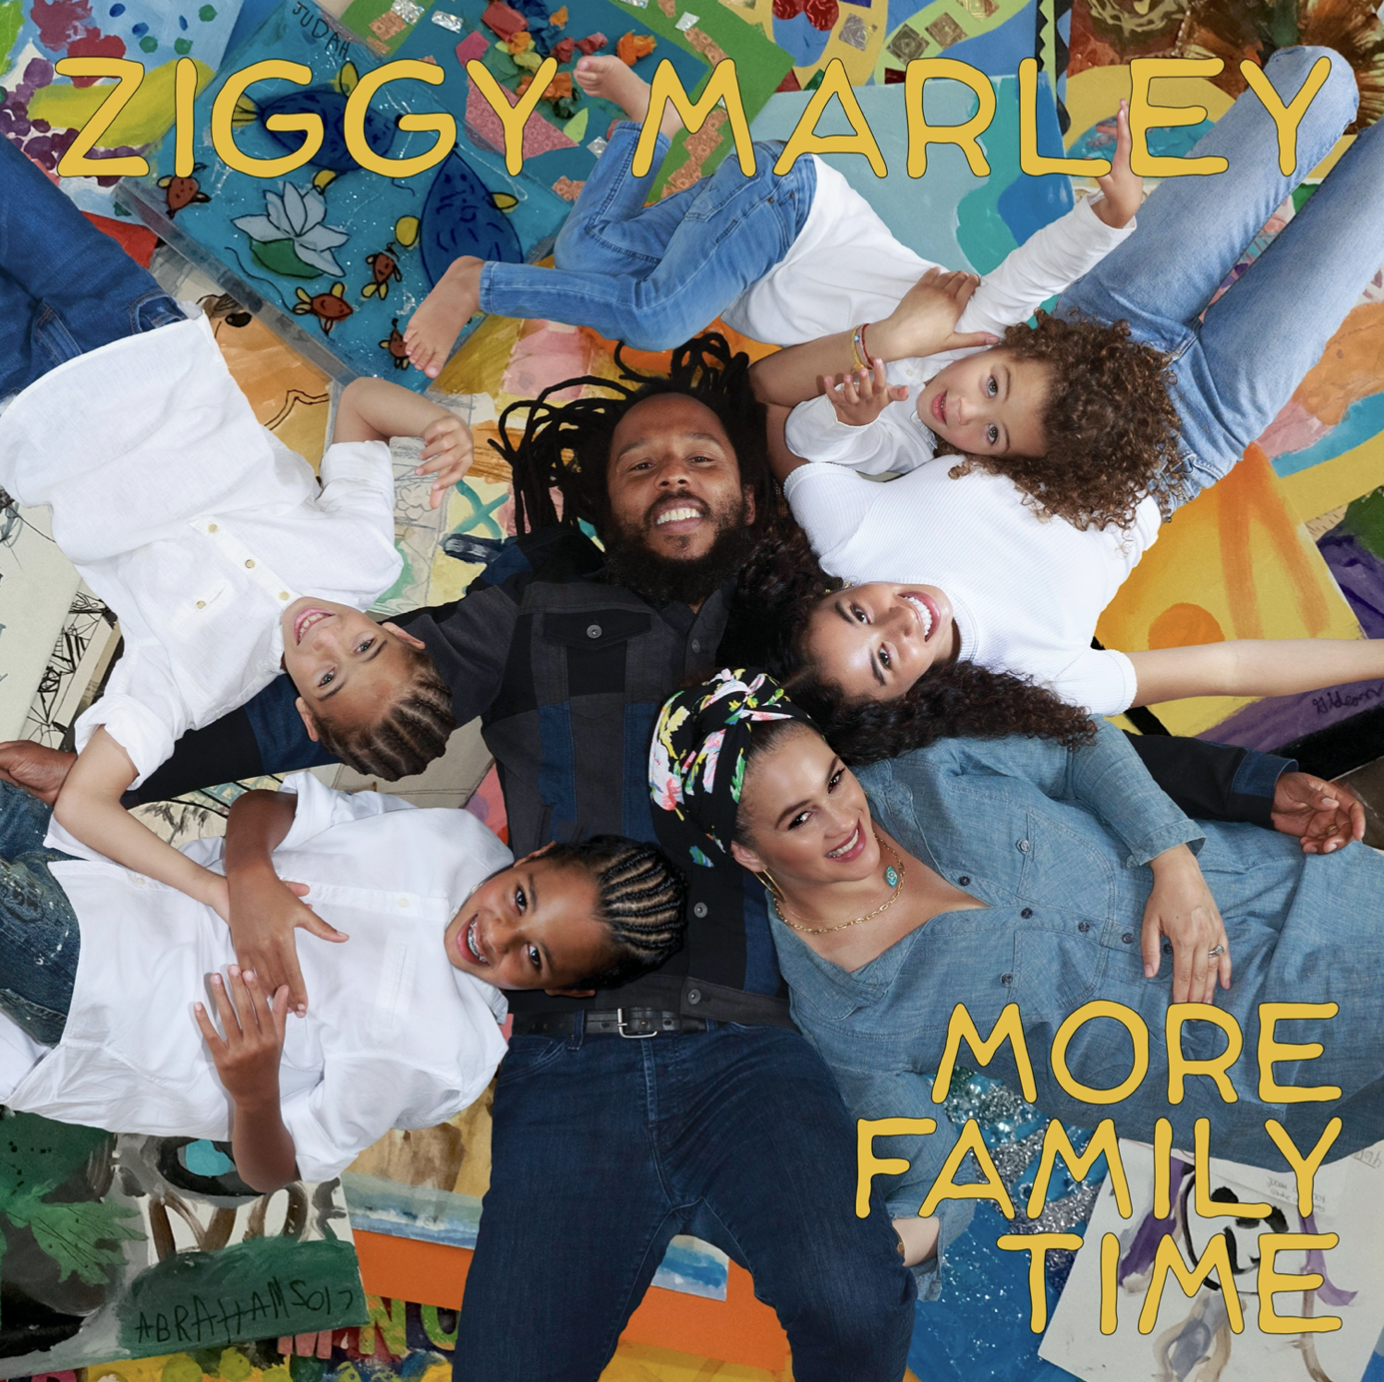 Ziggy Marley announces his new family album 'More Family Time ...